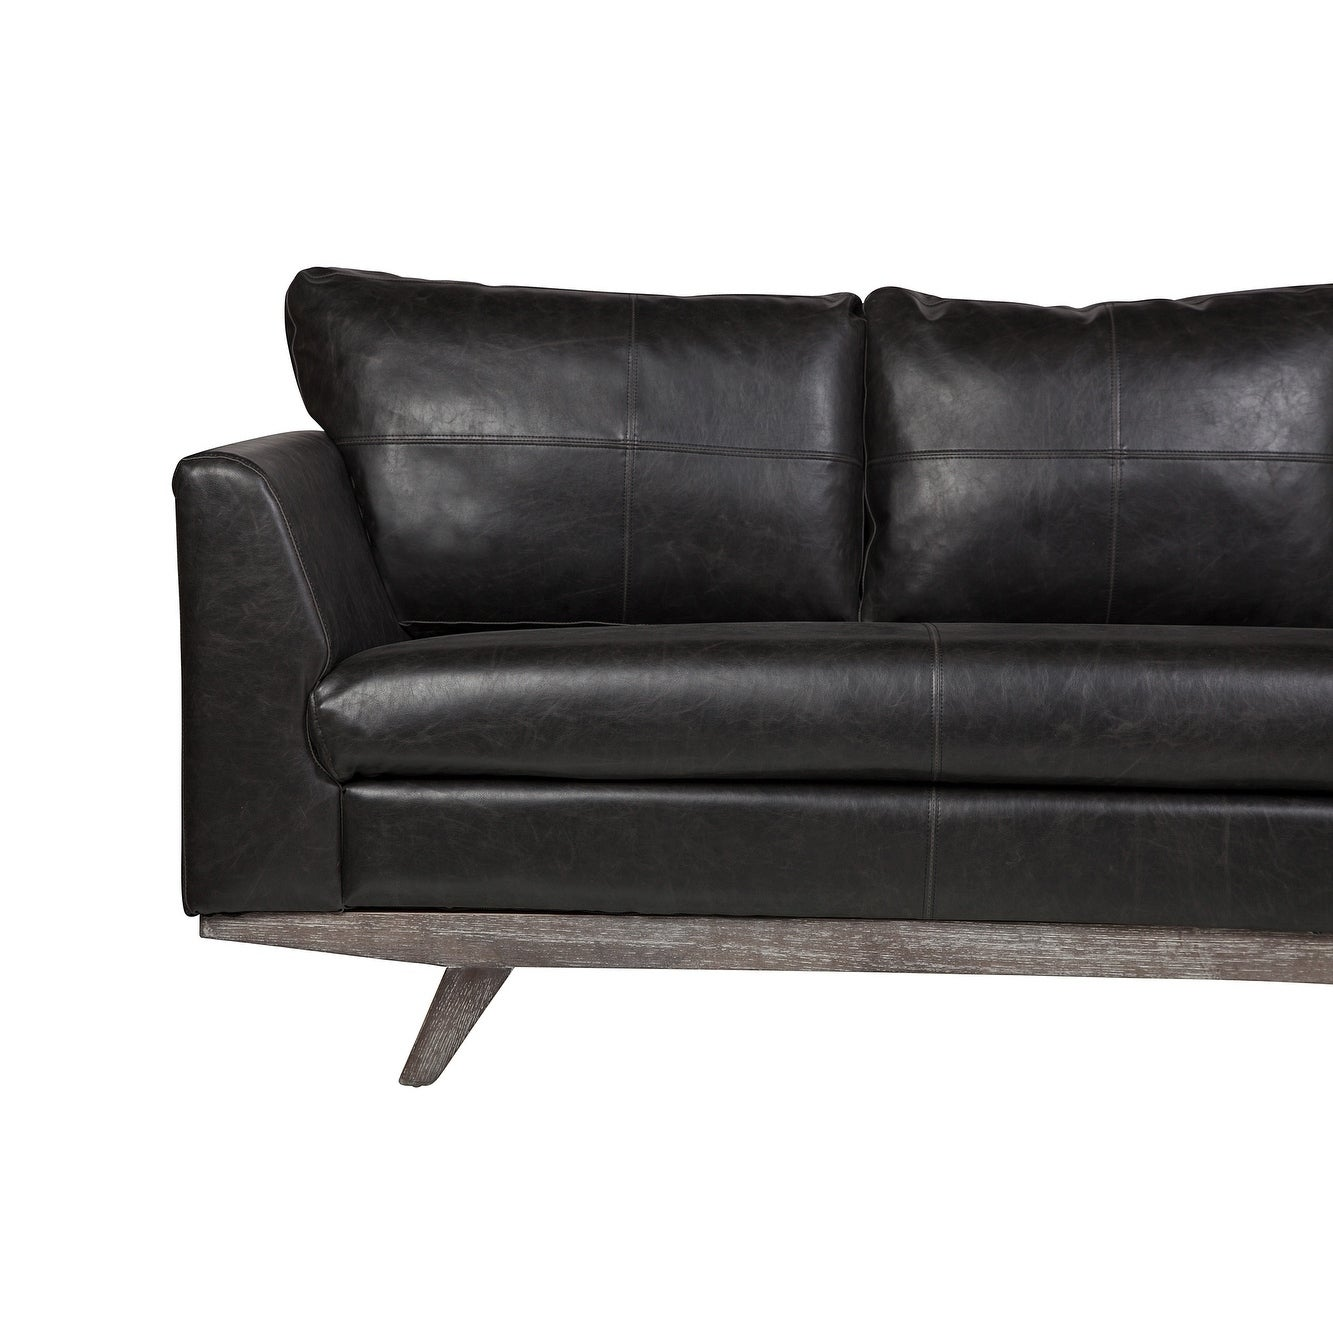 Shop Rebel 3 Seater Leather Sofa in Distressed Biker Black Leather ...